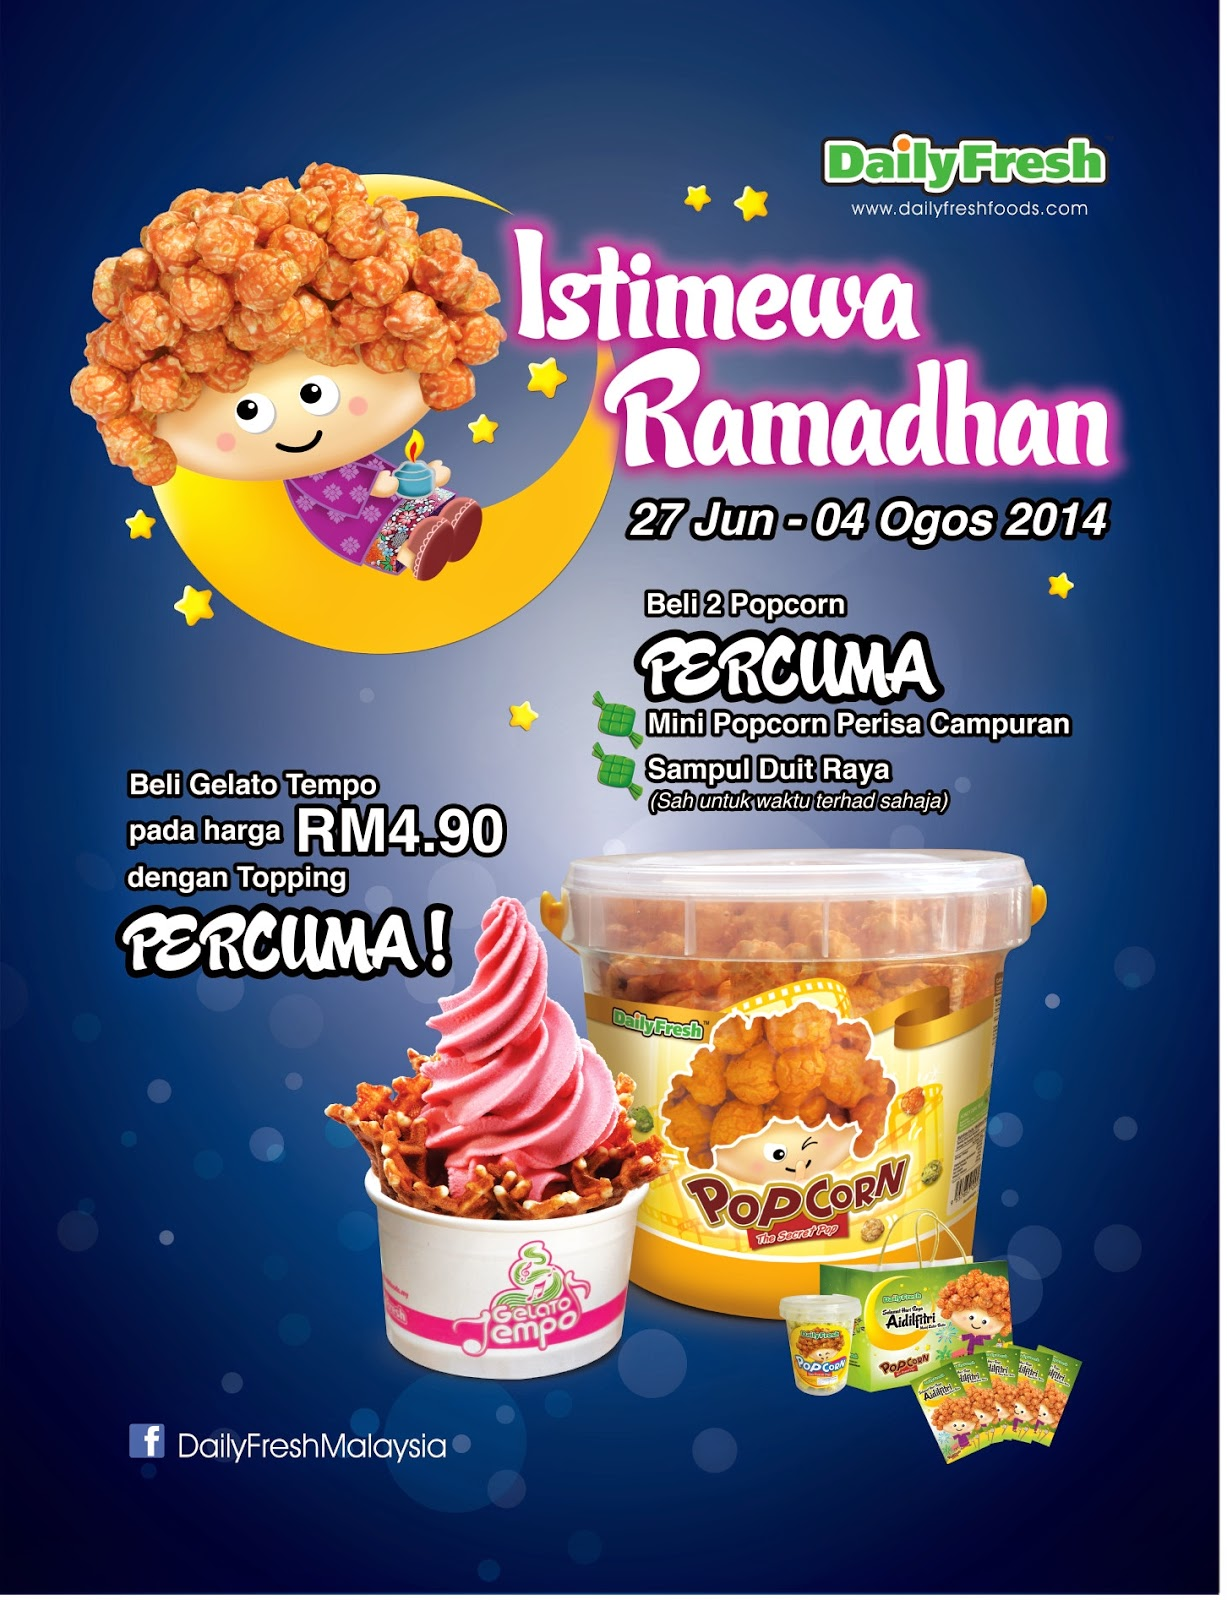 Istimewa Ramadhan With Dailyfresh Malaysian Foodie